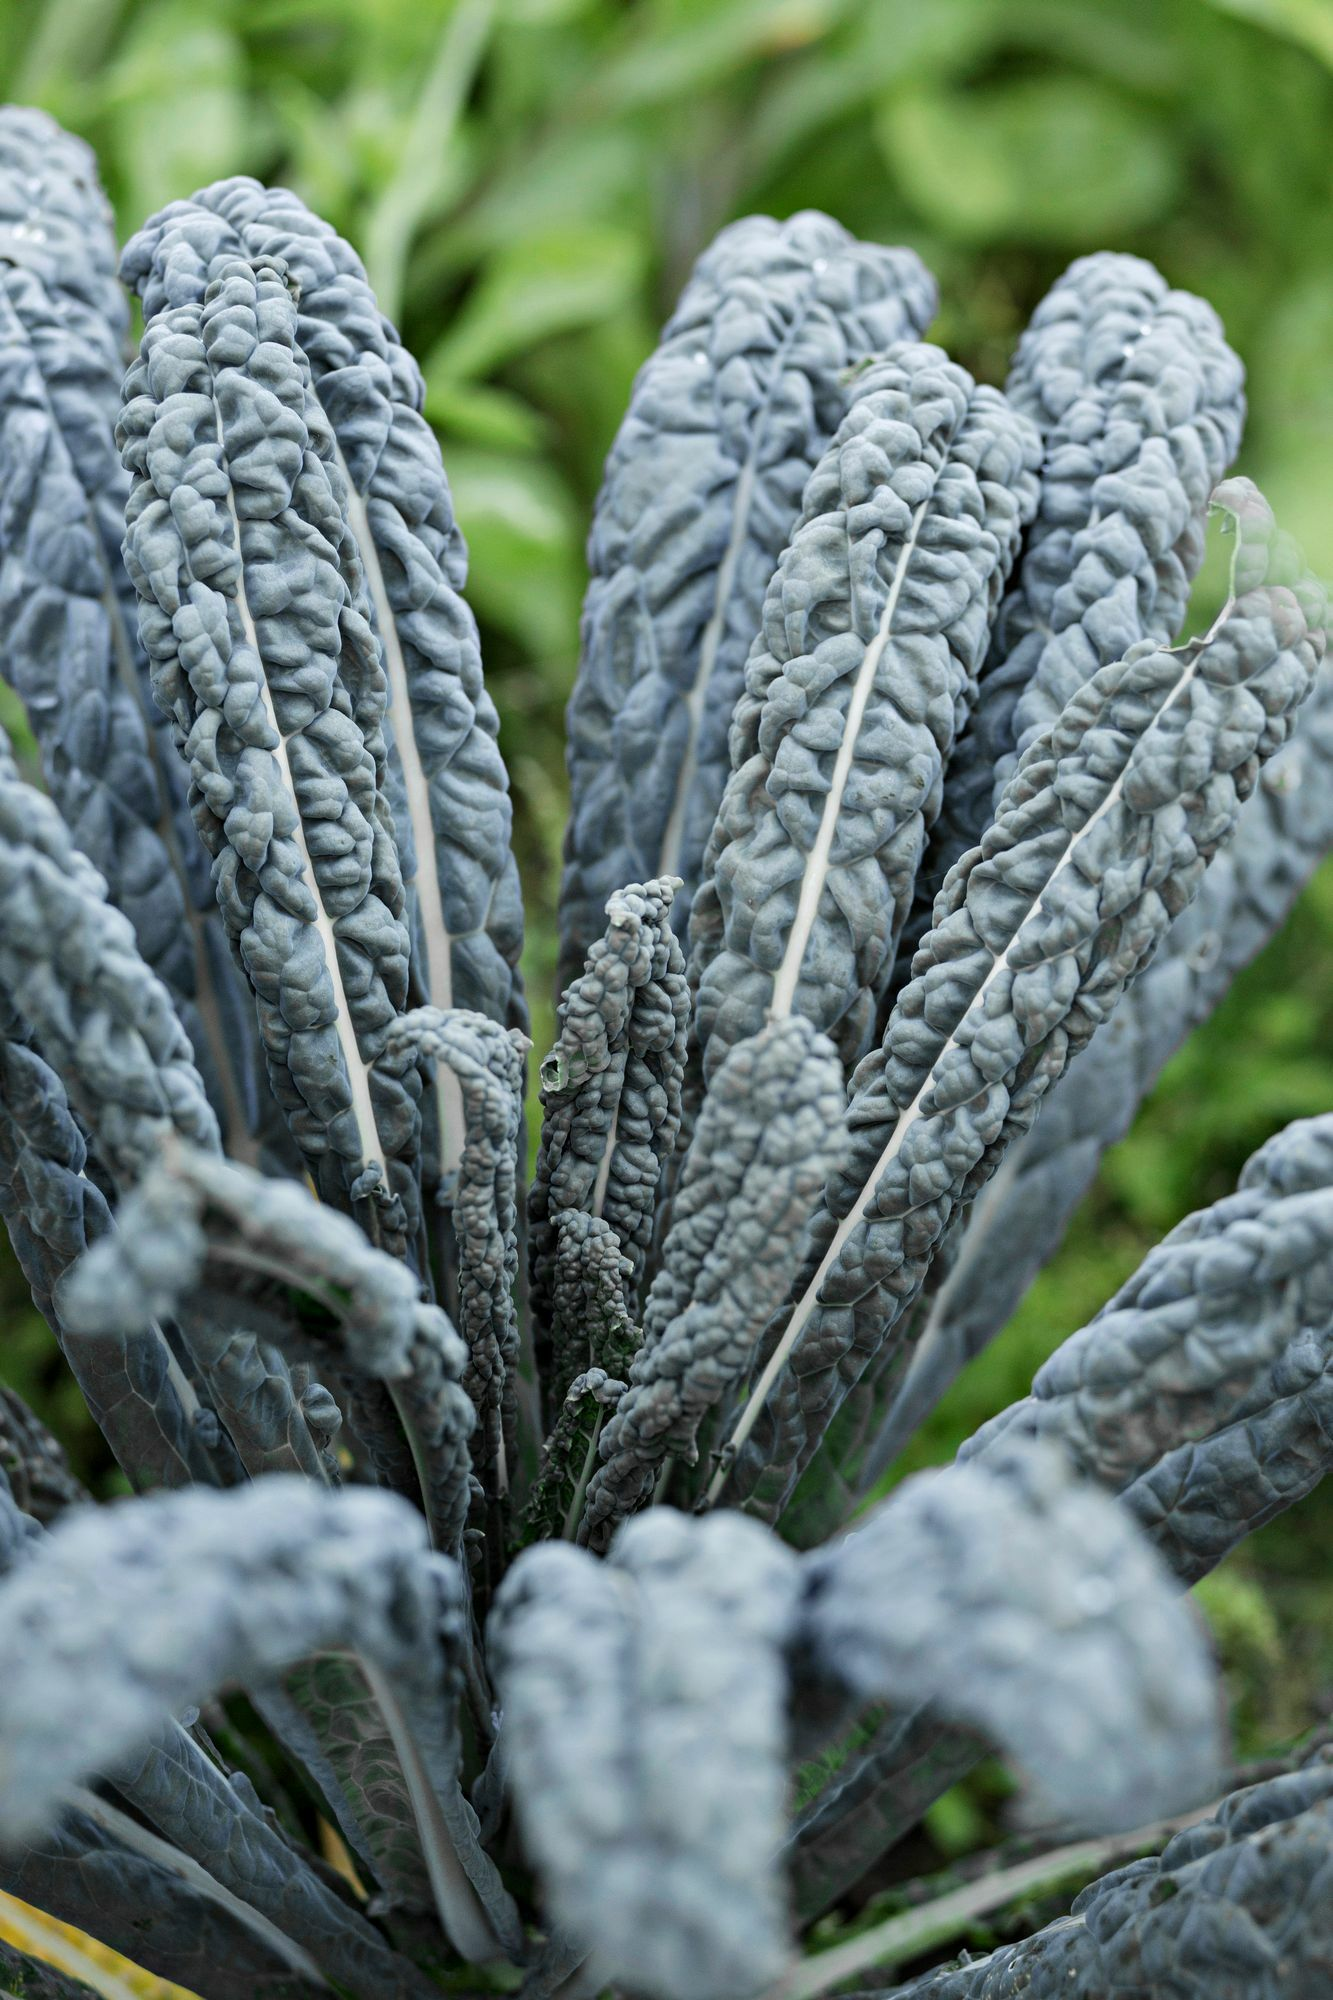 The kitchen garden is filled with colors!  The dark-leaved leaf cabbage variety 'Nero di Toscana', called palm cabbage and black cabbage, is beautiful and delicious